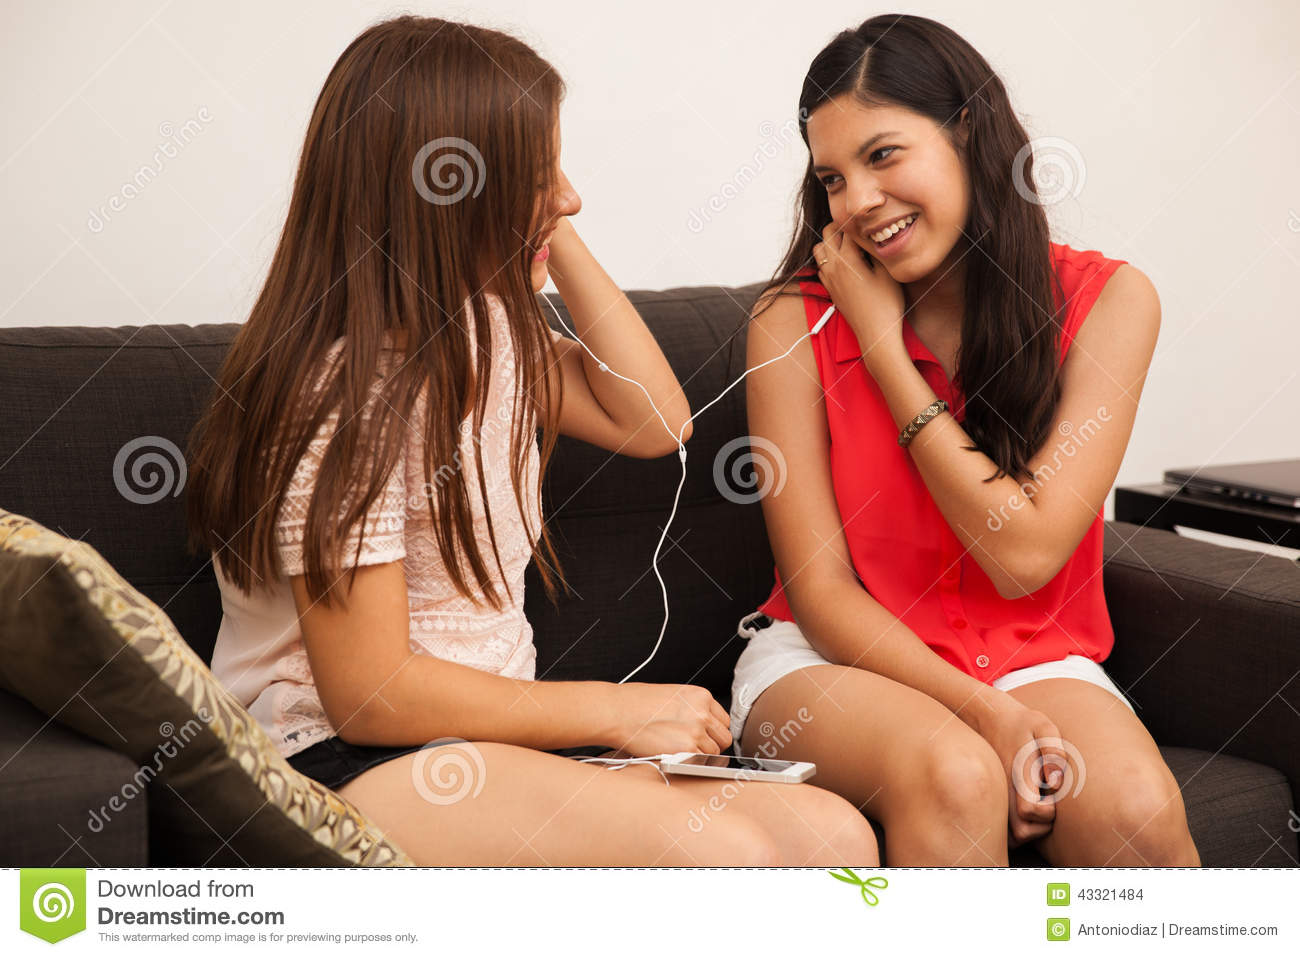 Listening To Music Together Stock Photo - Image: 43321484